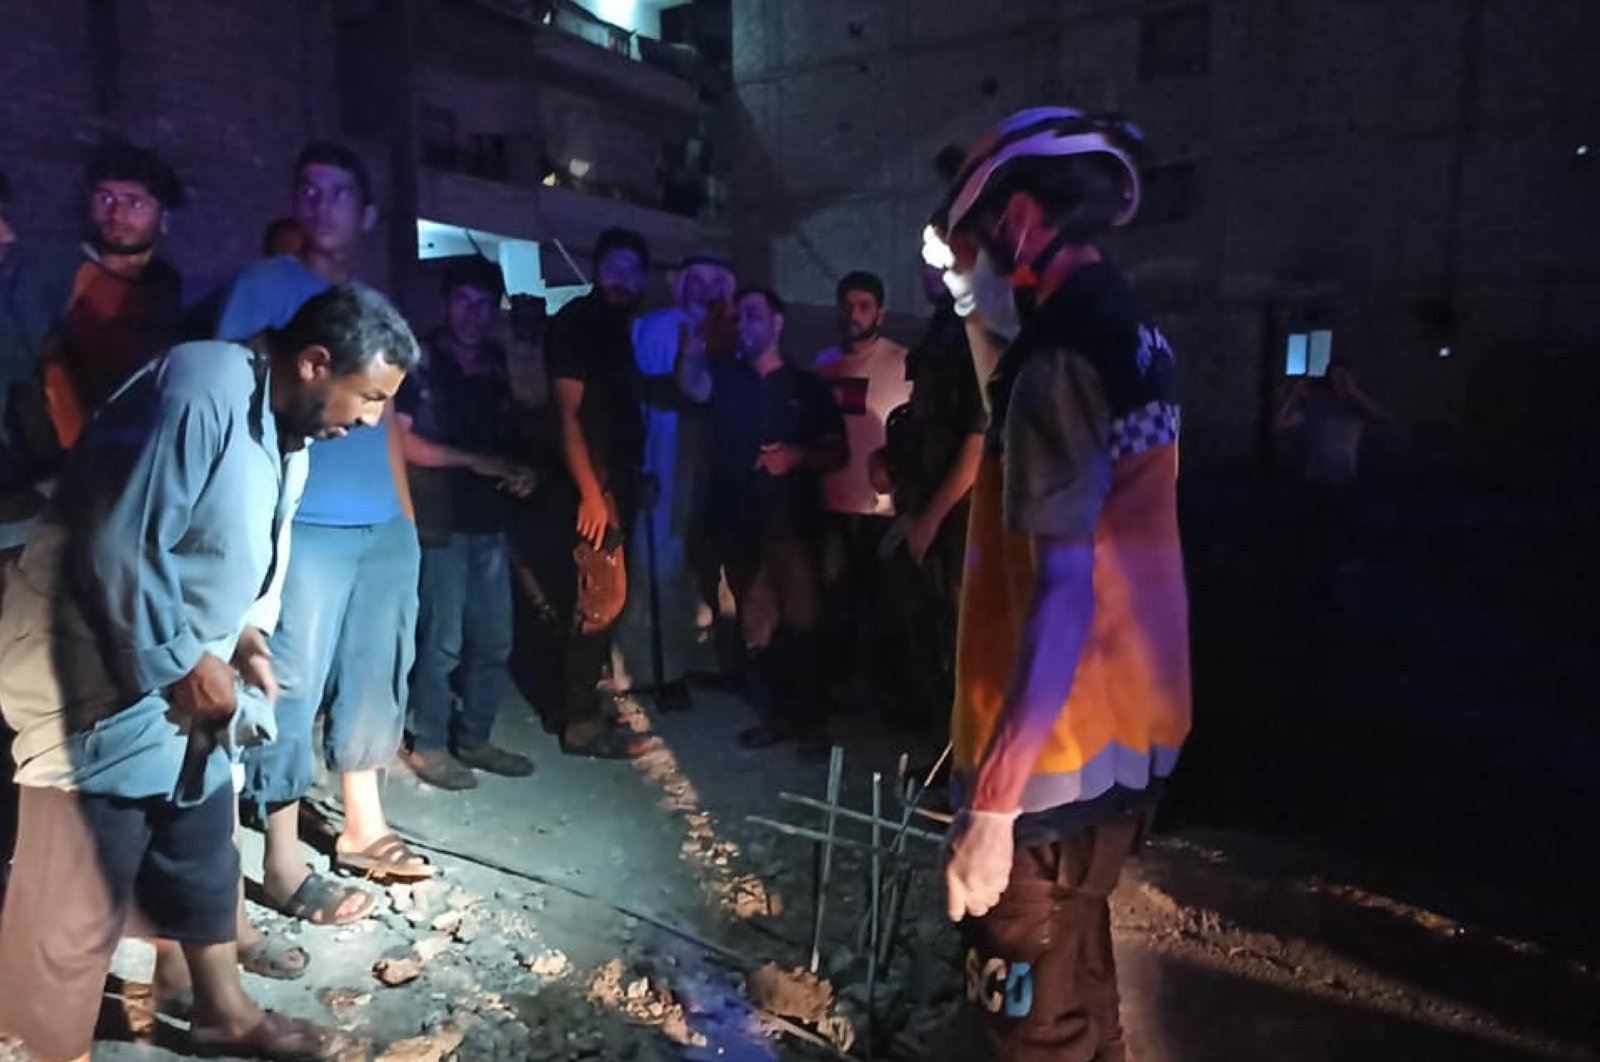 In a previous terrorist attack on July 3, 2020, an explosion in Syria's northern Afrin province killed one civilian and injured two others. (IHA Photo)